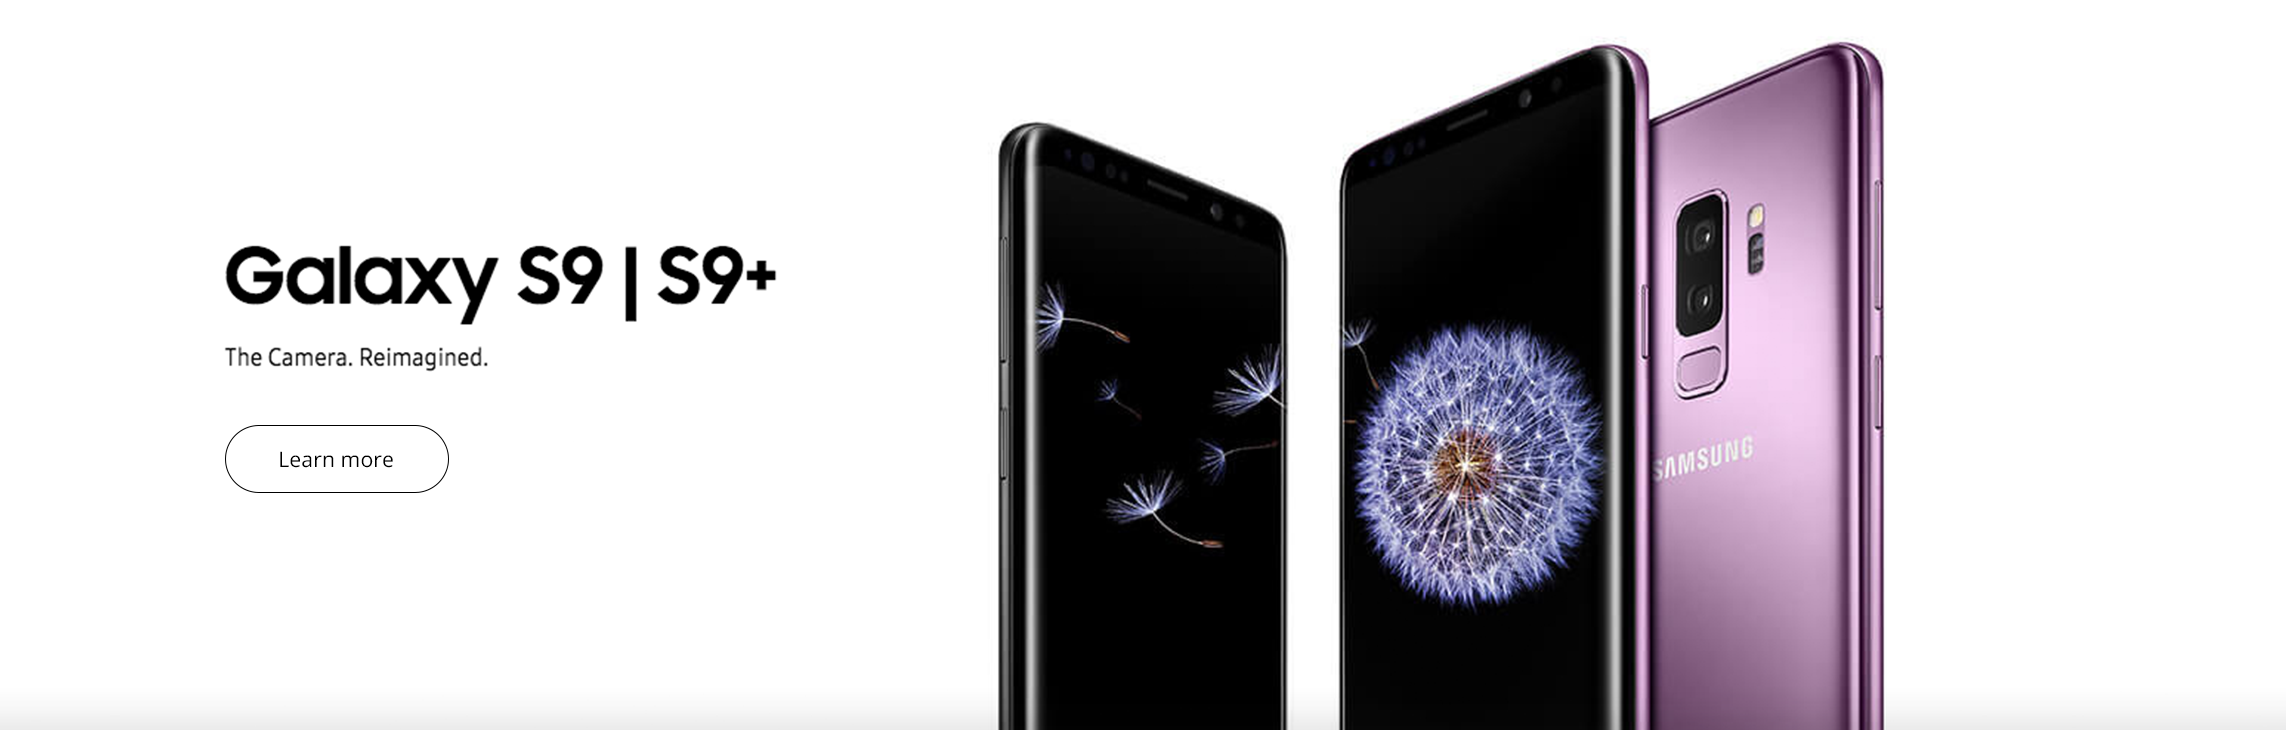 Samsung Galaxy S9 and S9+ from Verizon